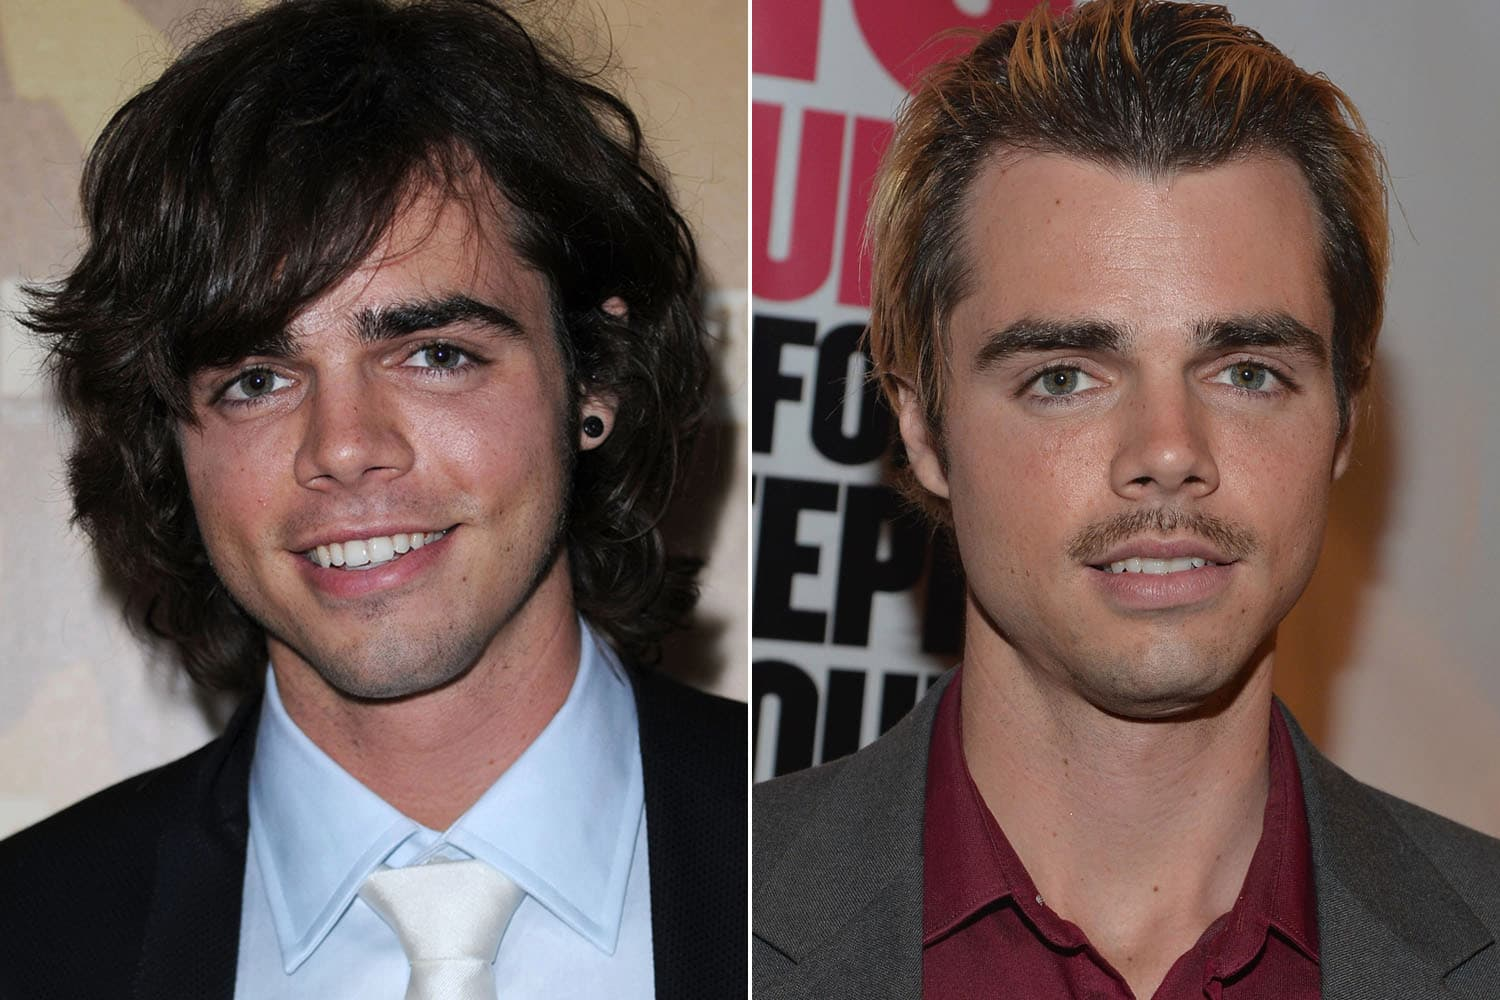 Reid Ewing Before After Plastic Surgery photo - 1